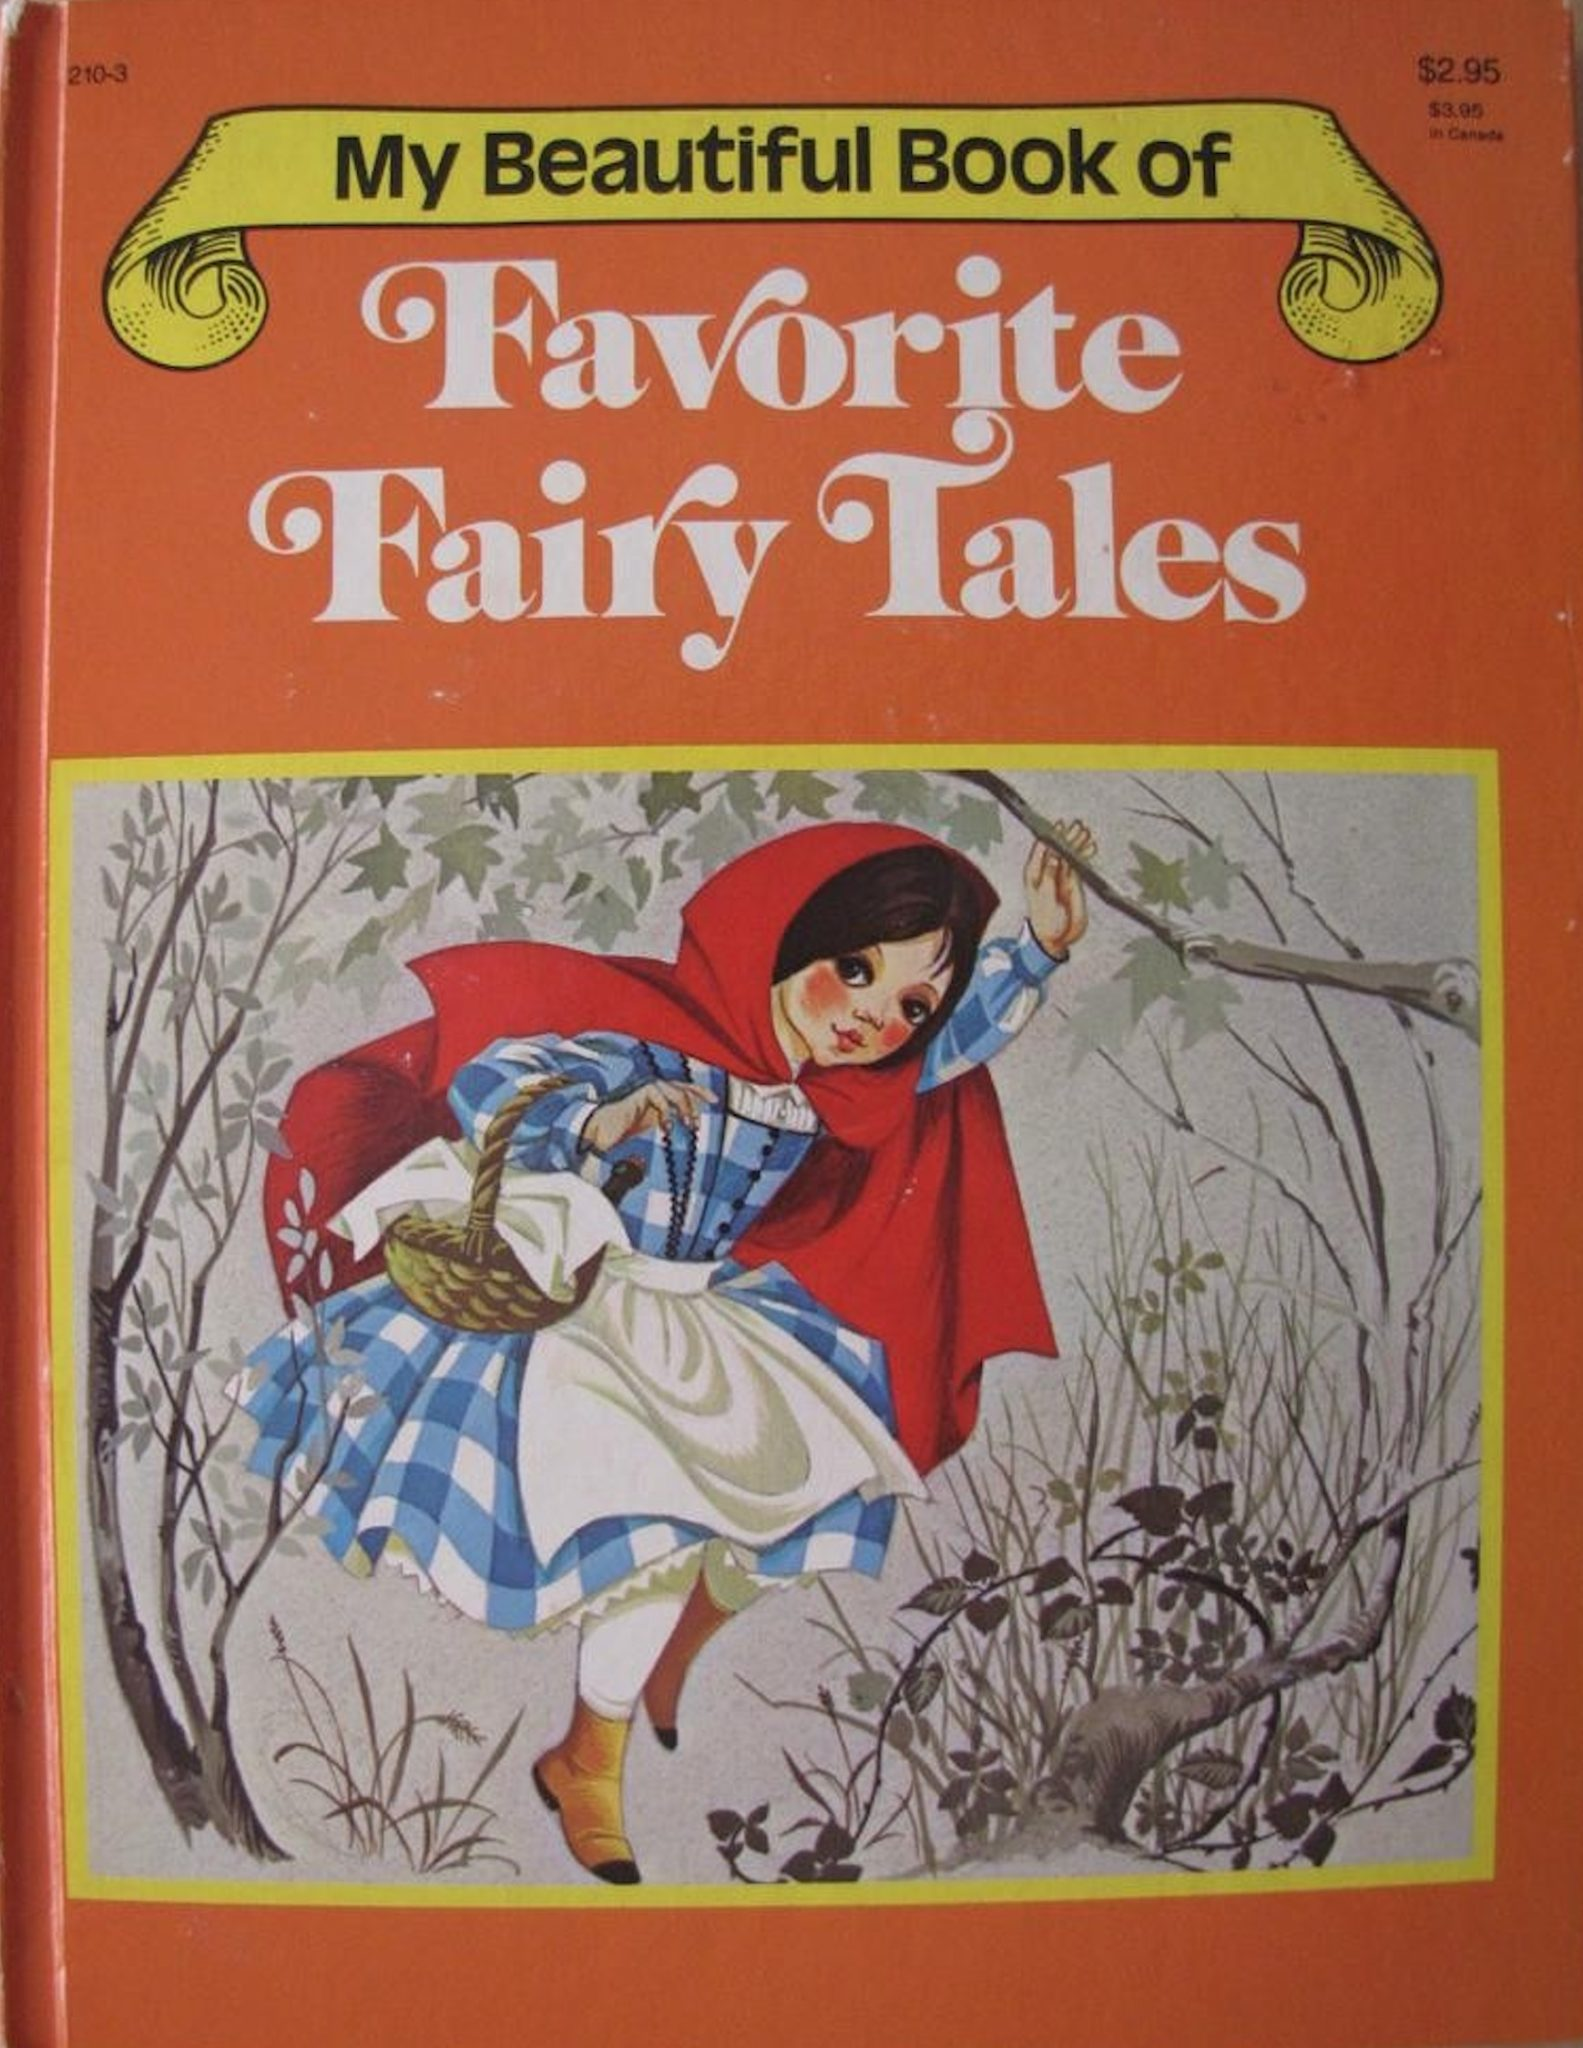 GJT My Beautiful Book of Favorite Fairy Tales